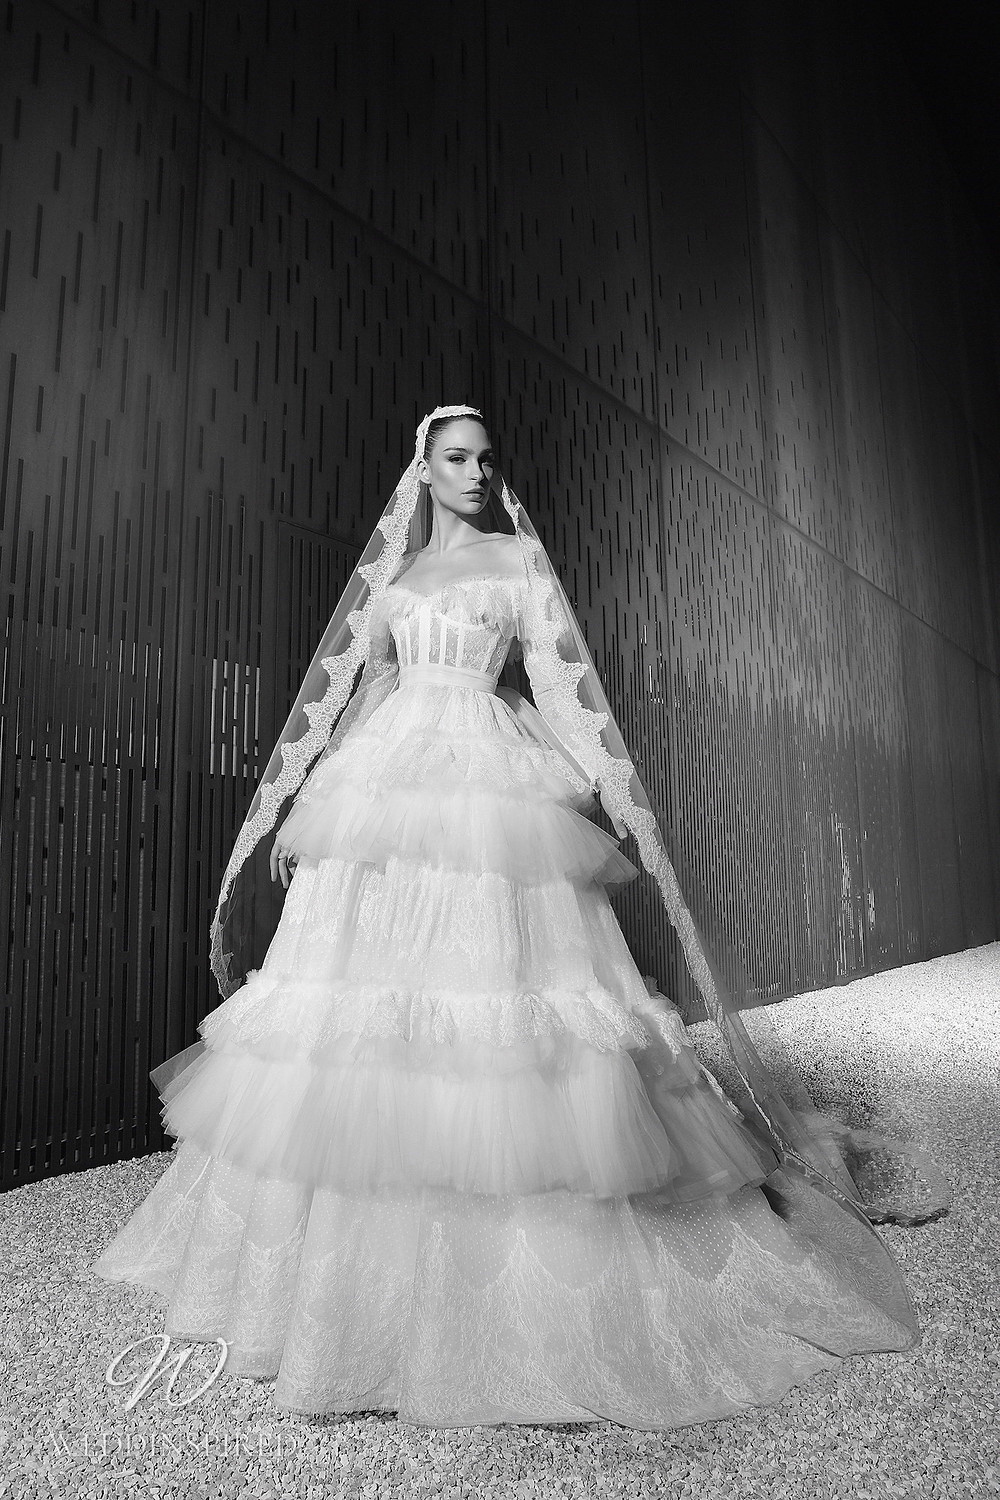 A Zuhair Murad Spring 2022 strapless tulle and lace off the shoulder ball gown wedding dress with a ruffle skirt